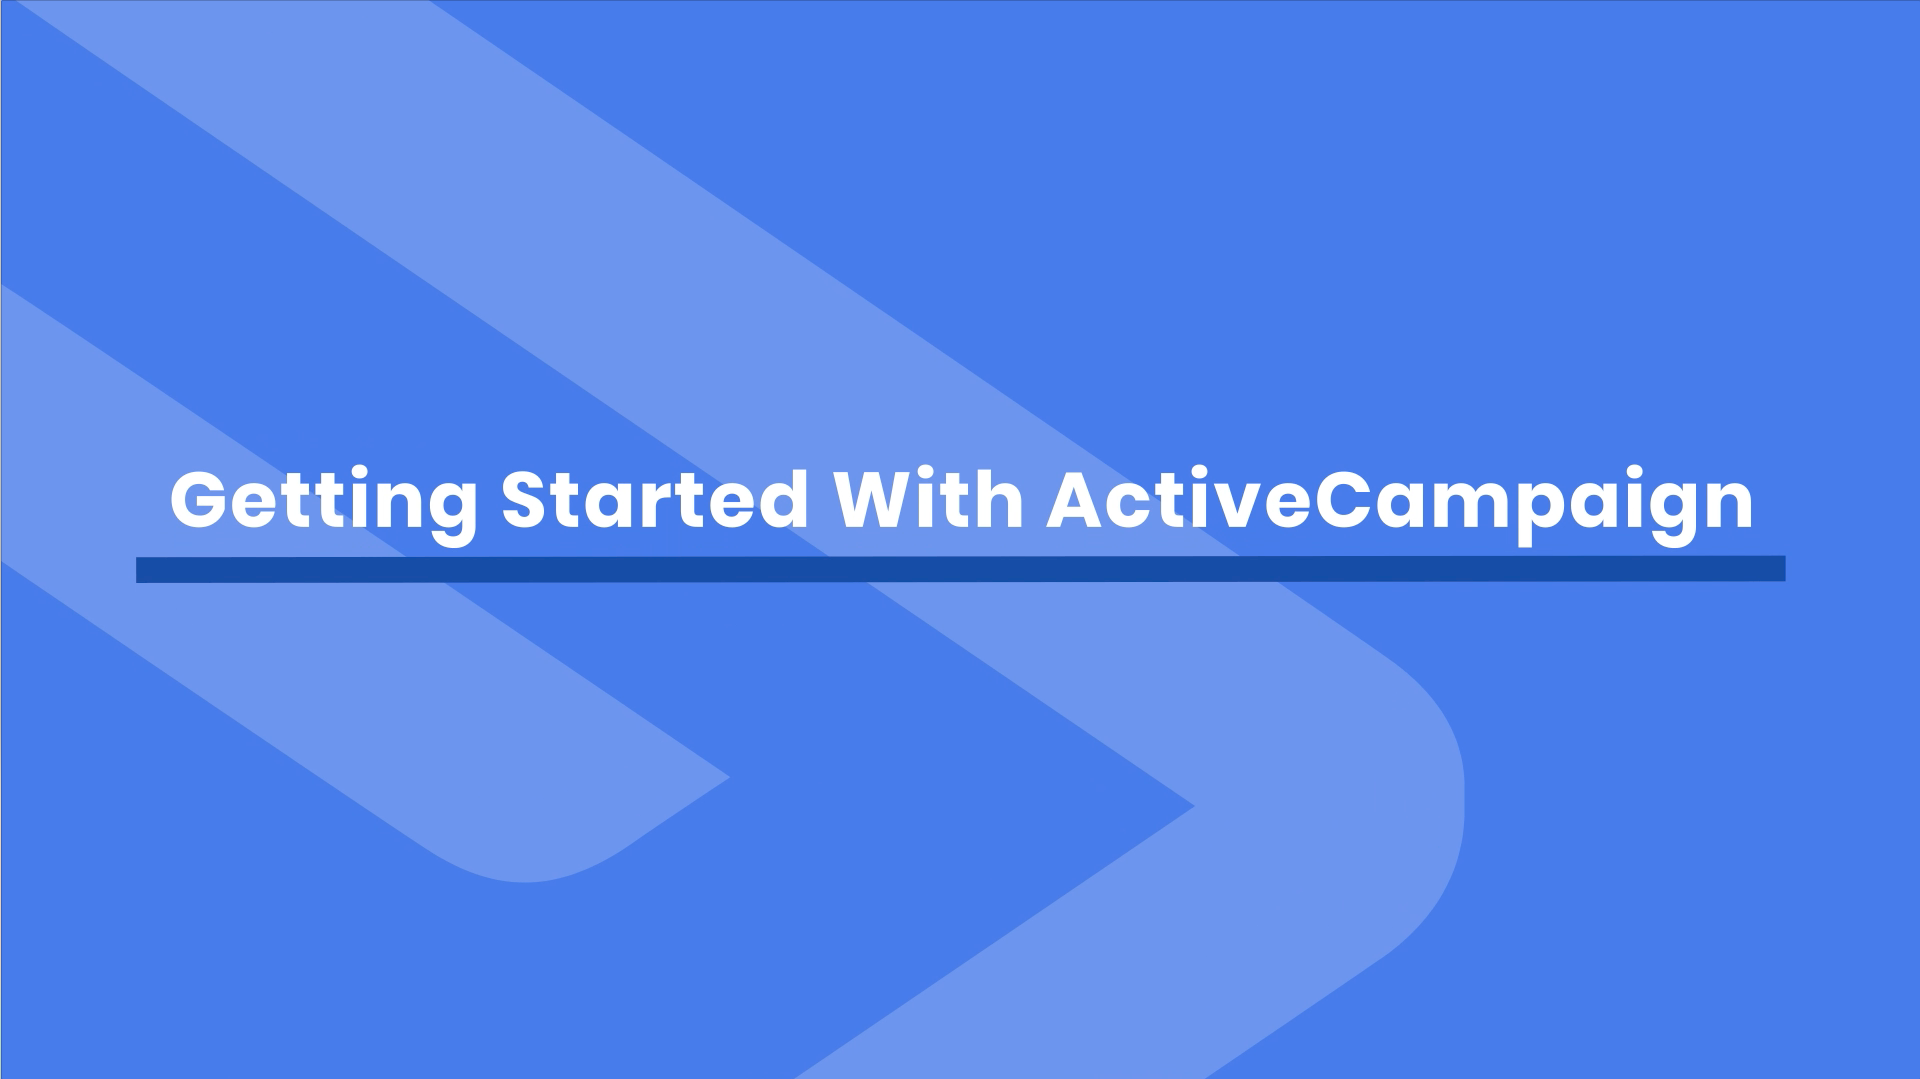 How To Get Started with ActiveCampaign